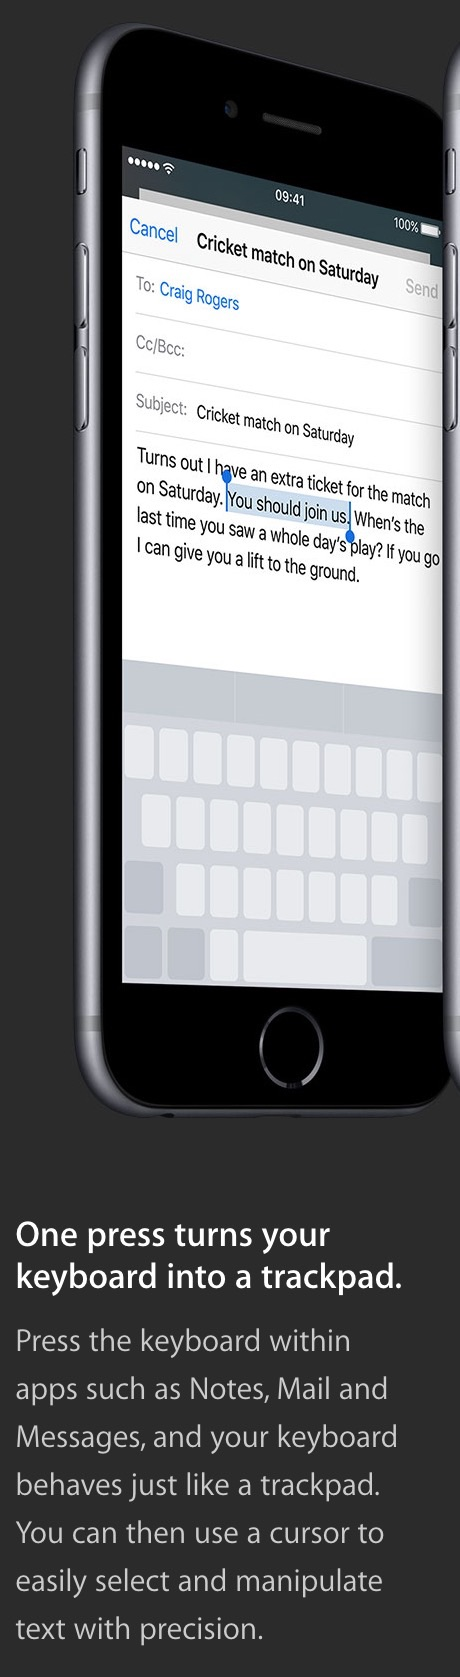 http://www.apple.com/iphone-6s/3d-touch/